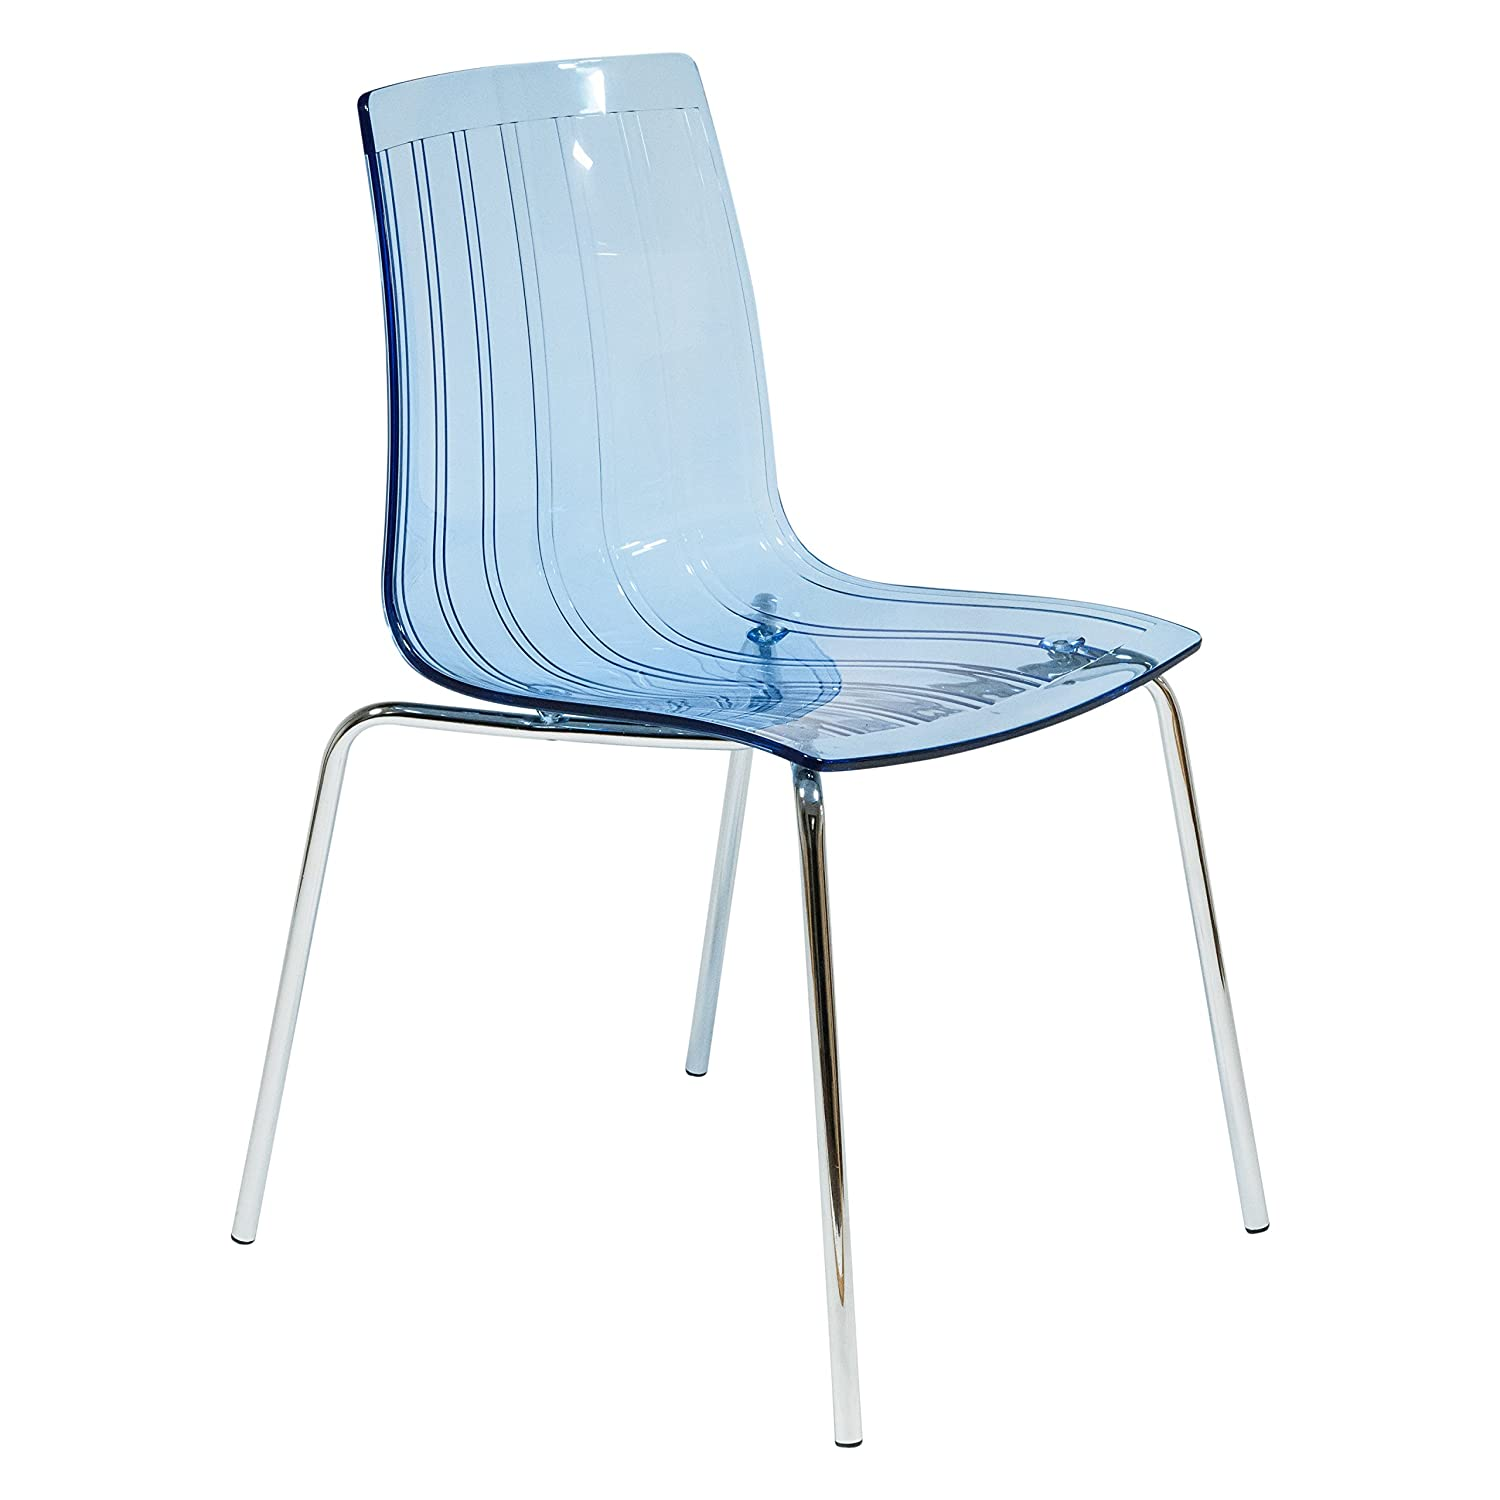 LeisureMod Ralph Mid-Century Dining Chair with Chrome Base in Transparent Blue